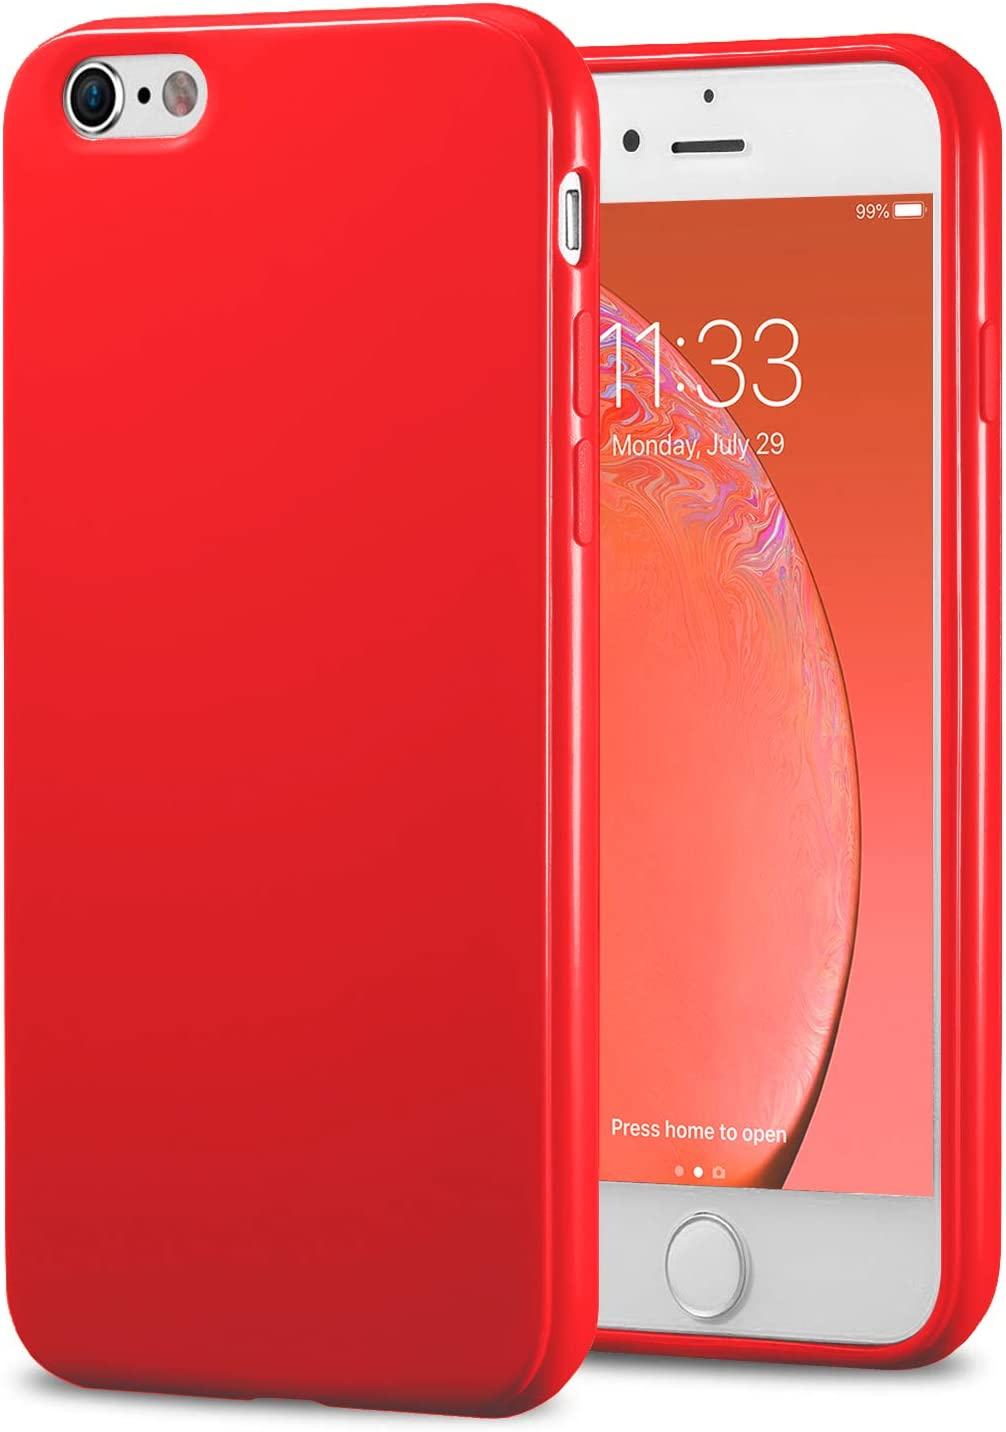 TENOC Phone Case Compatible for Apple iPhone 6S Plus and iPhone 6 Plus 5.5 Inch, Slim Fit Cases Soft TPU Bumper Protective Cover, Glossy Red